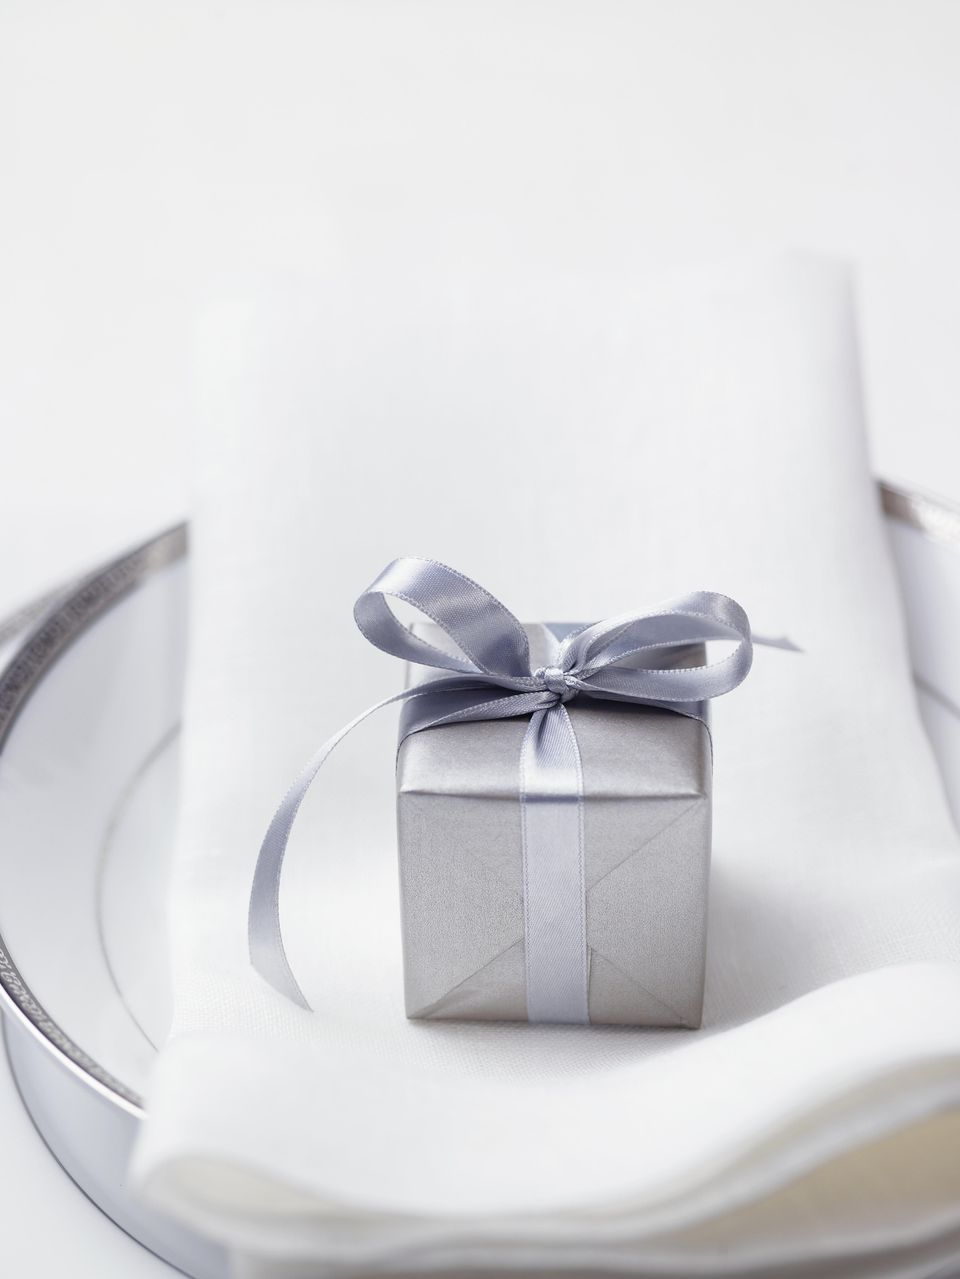 Silver miniature decorative gift box on napkin, close-up